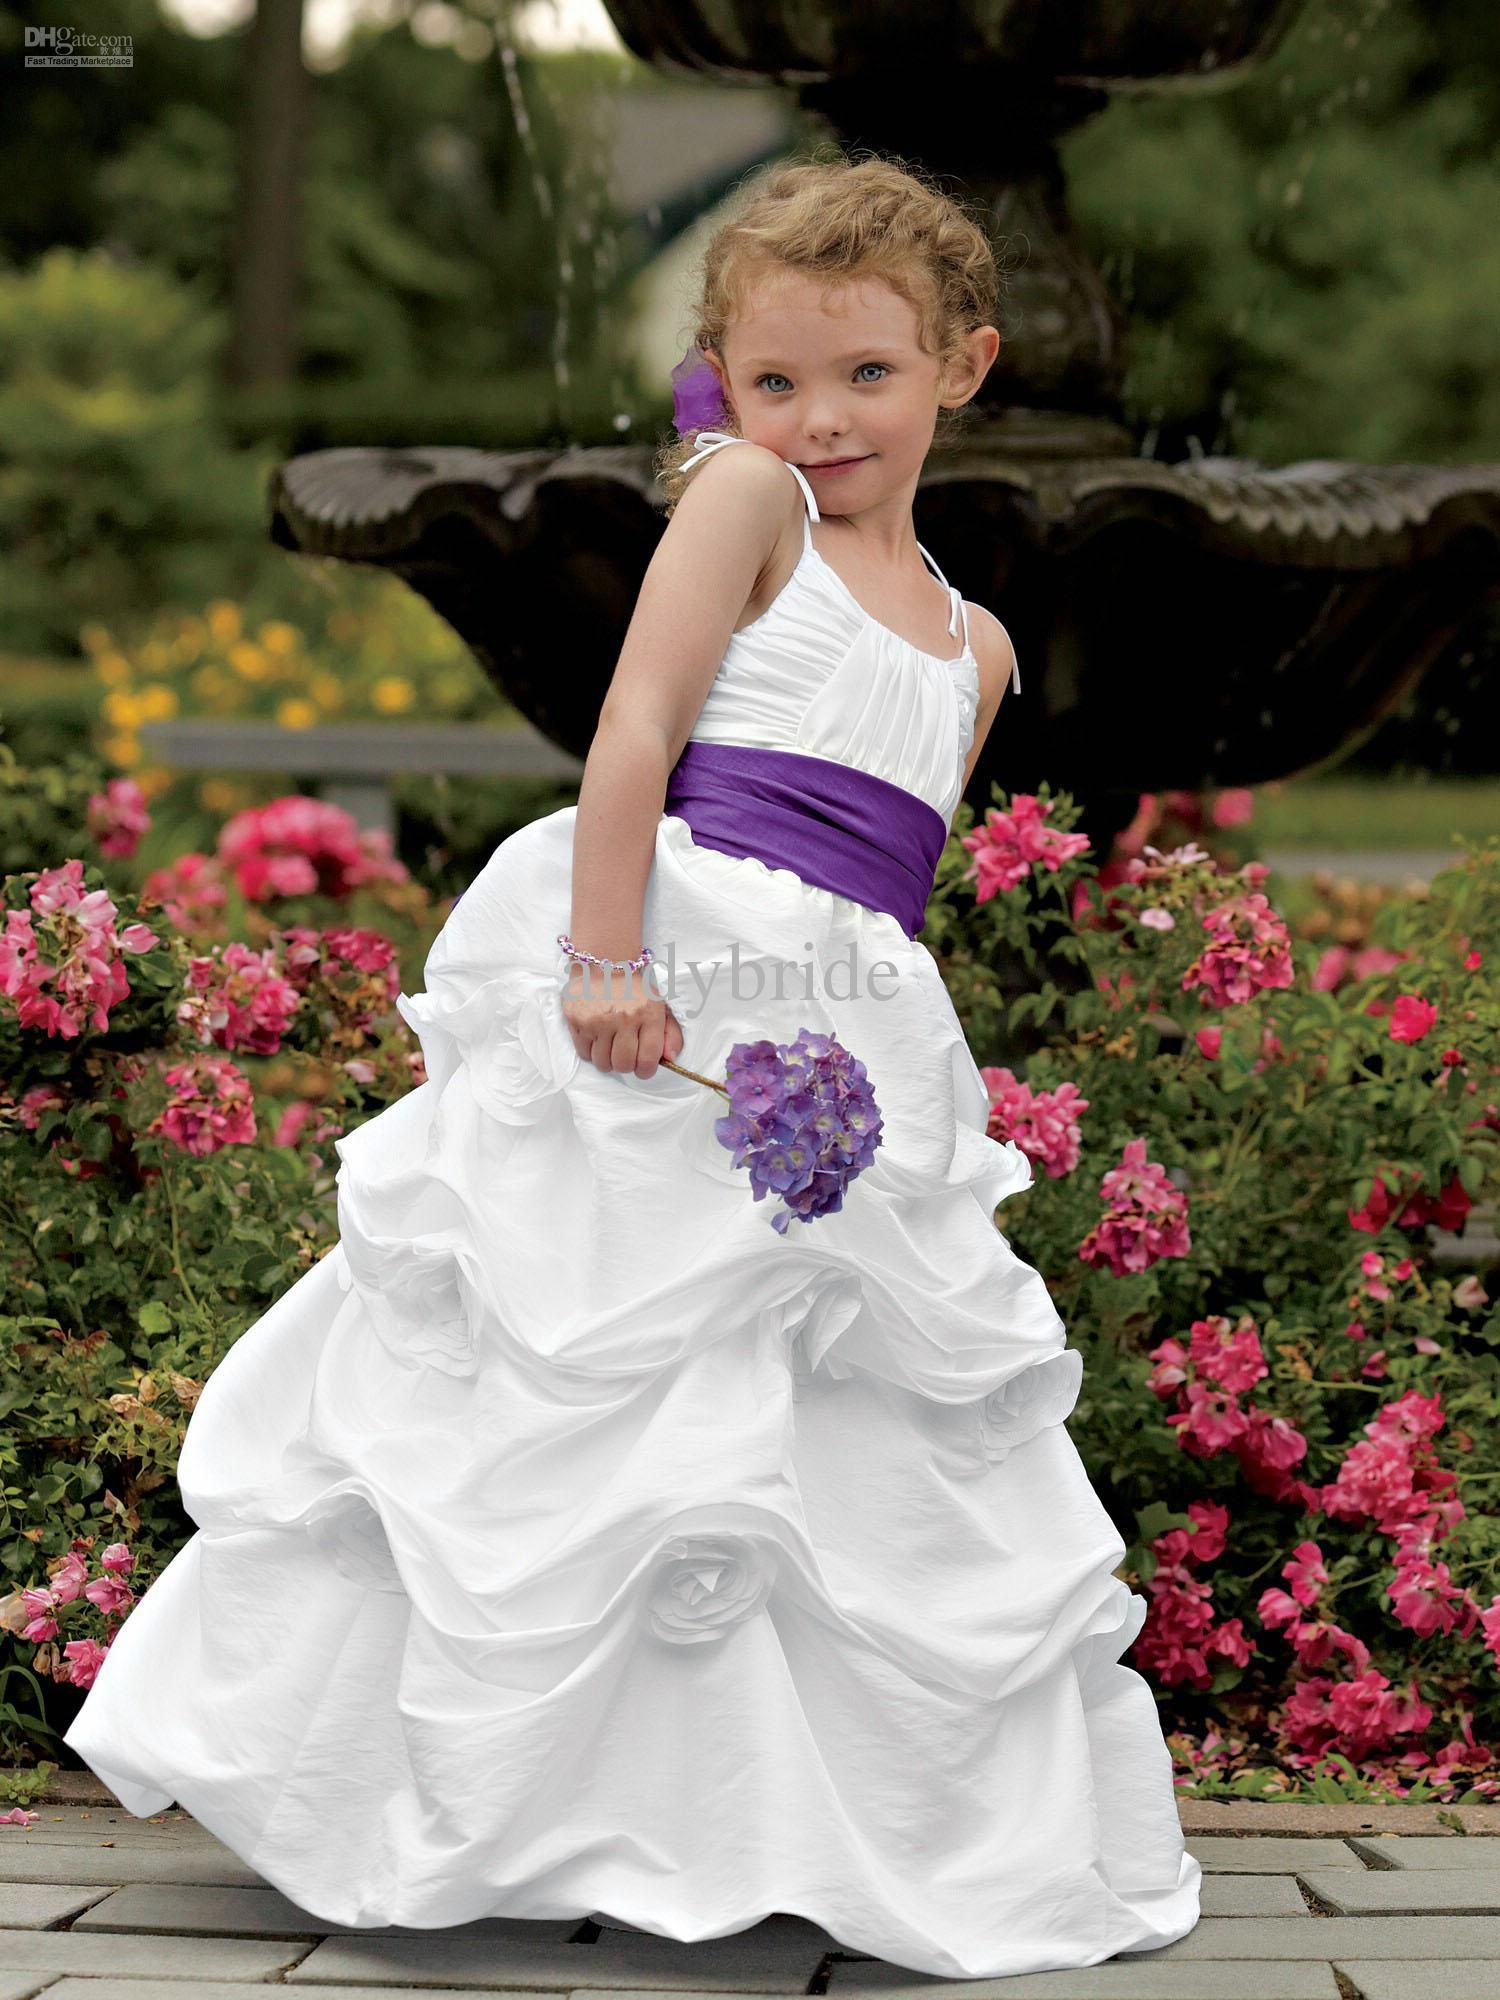 Cheap lovery purple belt bubble unkle length flower girl dresses cheap lovery purple belt bubble unkle length flower girl dresses little girls pageant dresses as low as 11492 also buy girls dresses size 10 girls formal izmirmasajfo